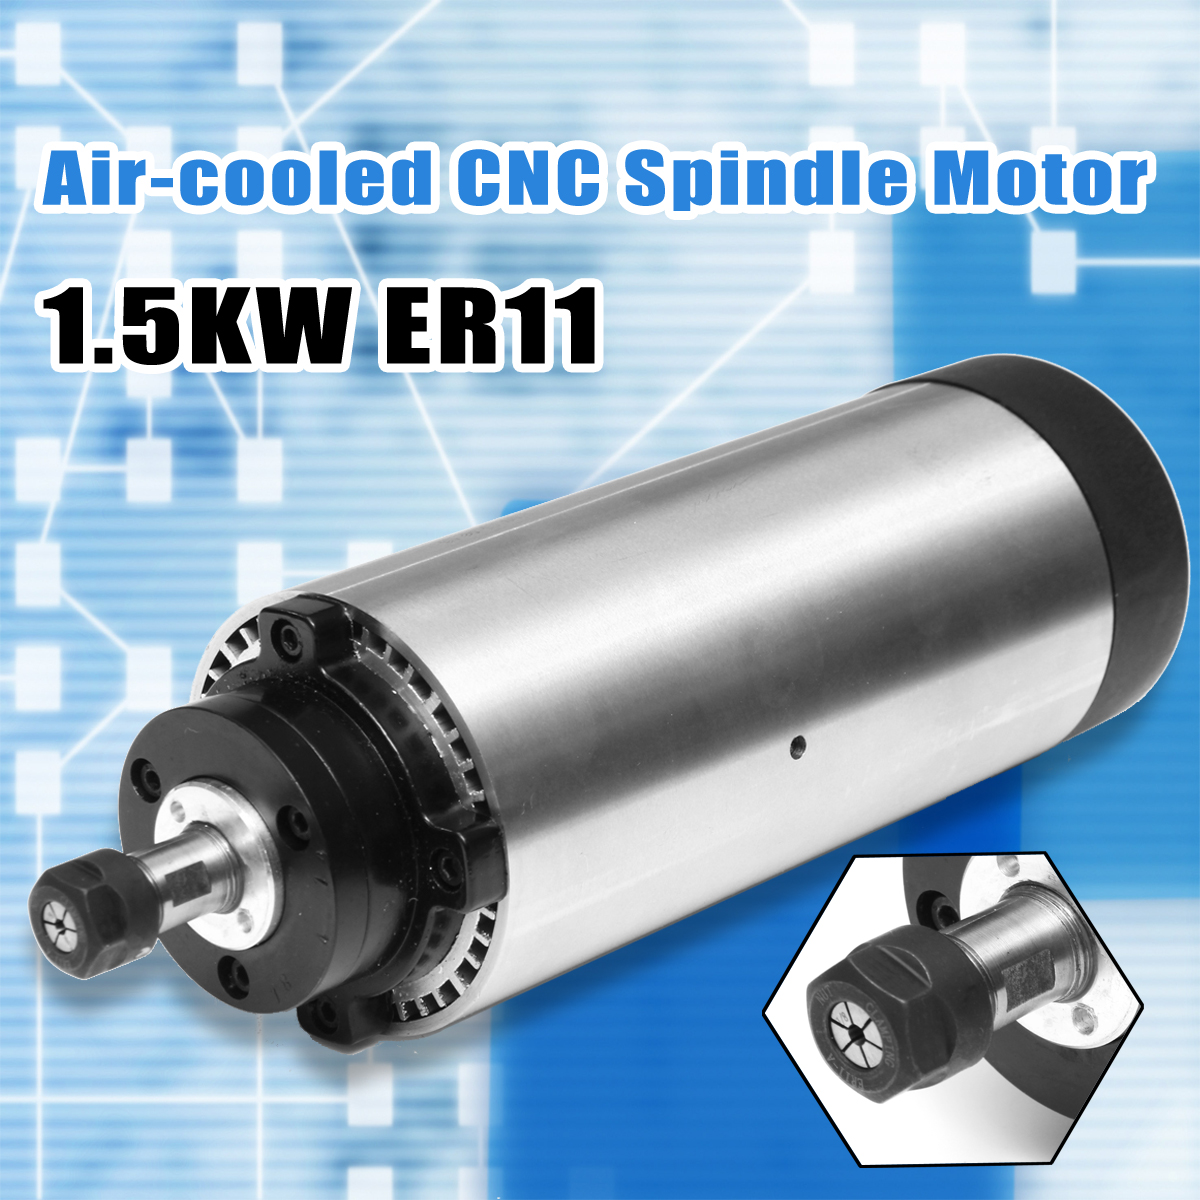 1.5kw Air Cooled CNC Spindle Motor ER11 24000rpm 400Hz 4 bearings CNC Milling Machine Tool Spindle AC 220V hj brand 1 5kw 80mm er11 cnc spindle 24000rpm machine spindle motor water colling engraving milling spindle 220v ac spindle